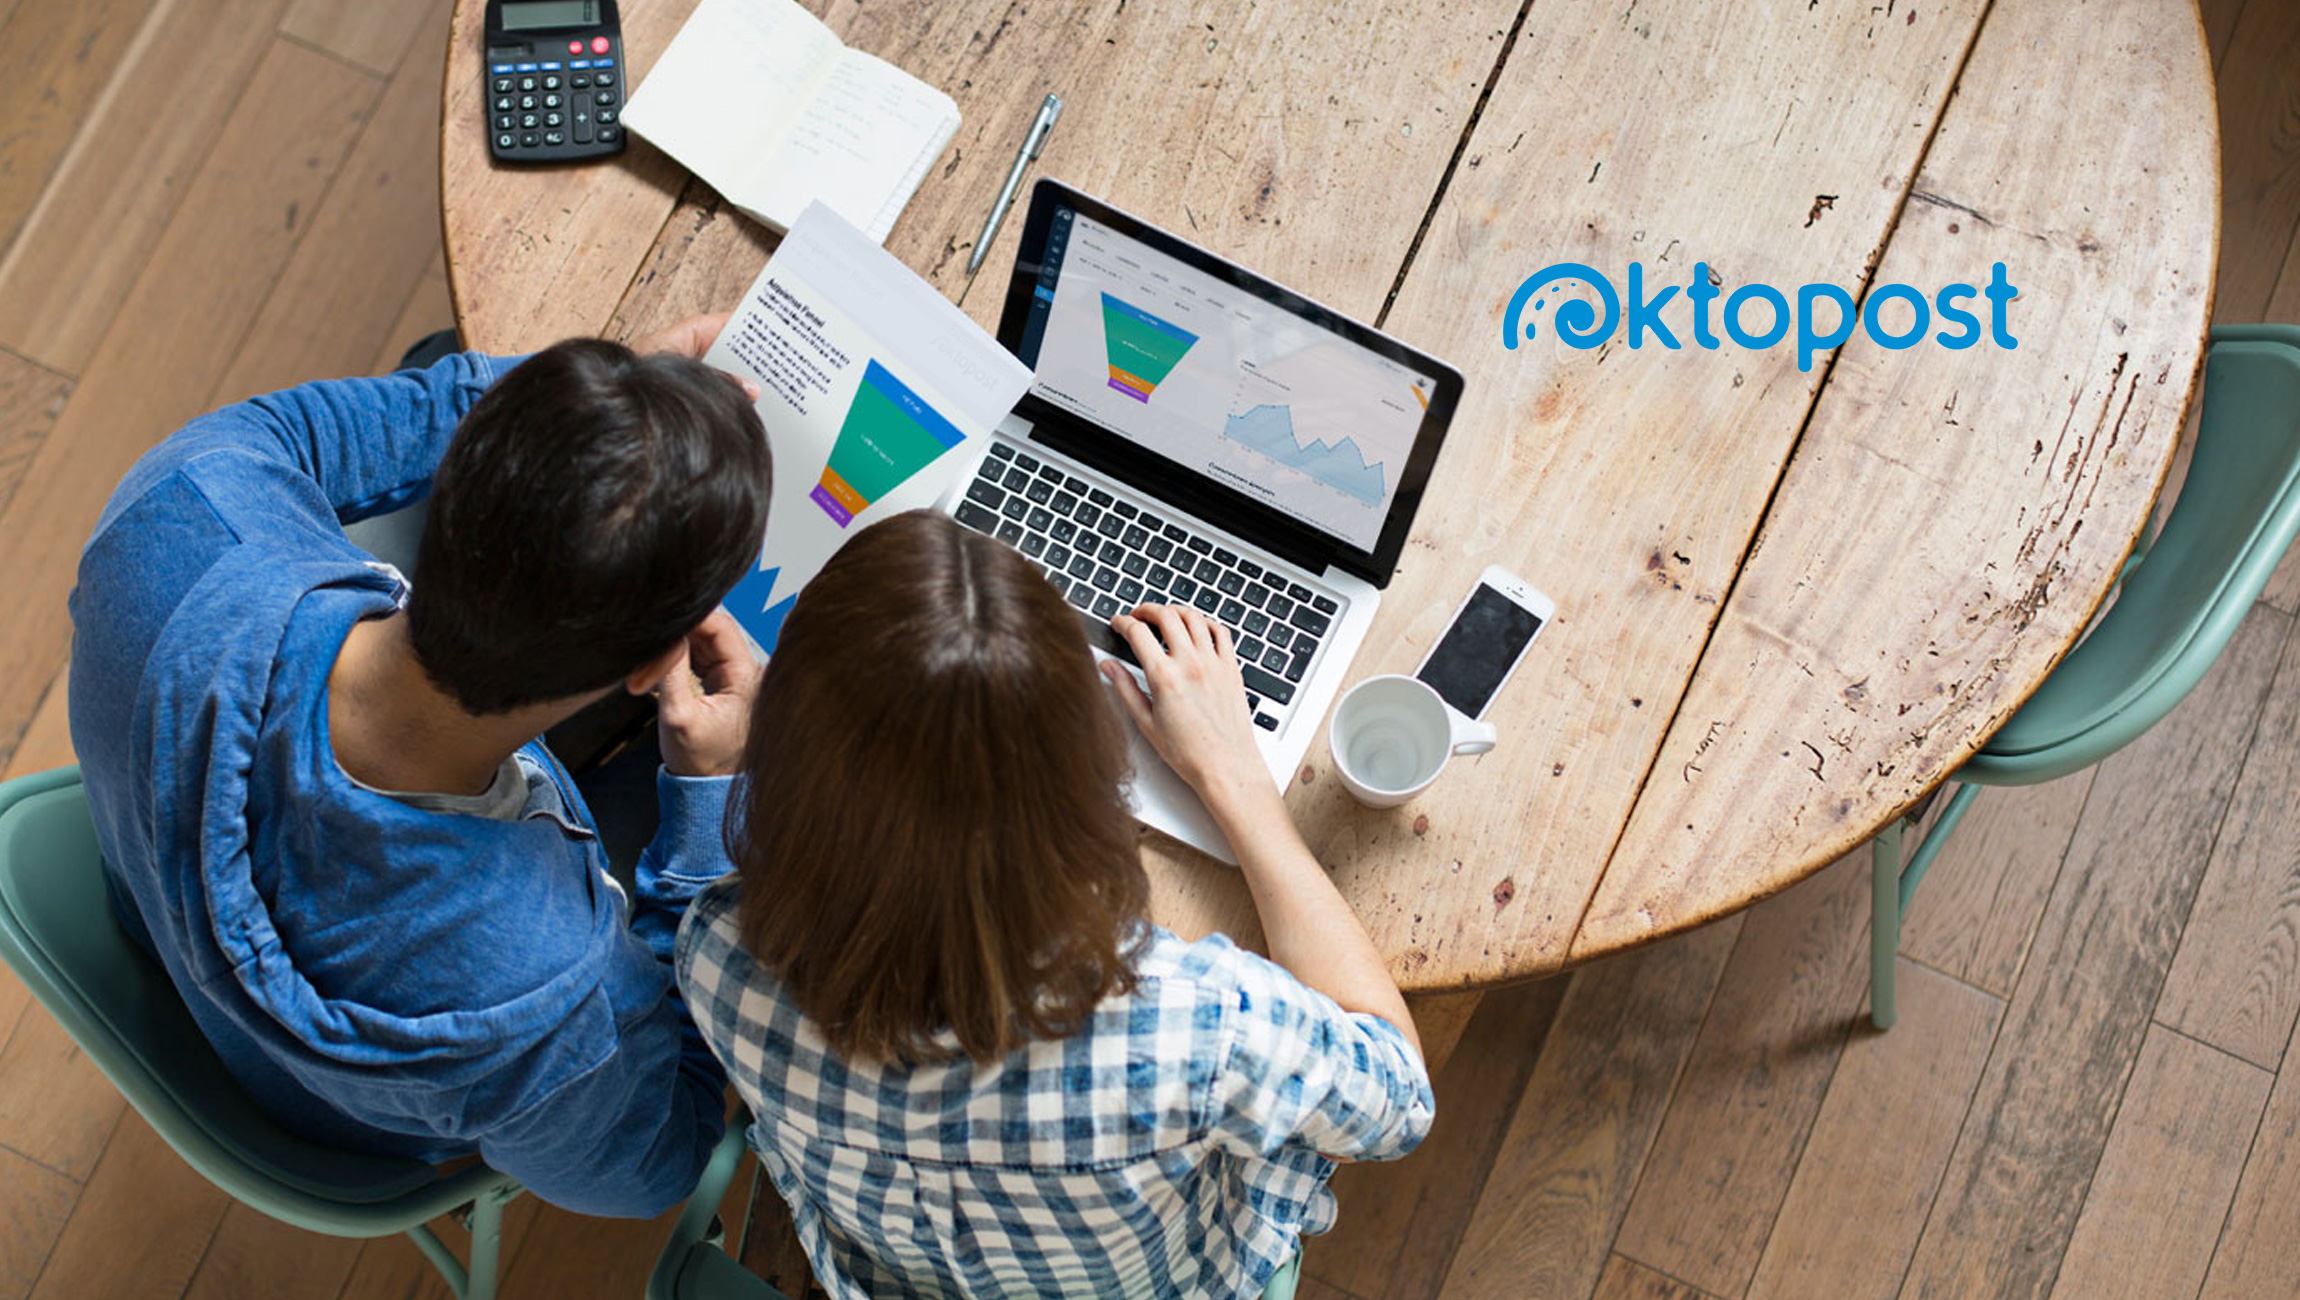 Oktopost Launches a New Visual Asset Management Solution for B2B Marketers